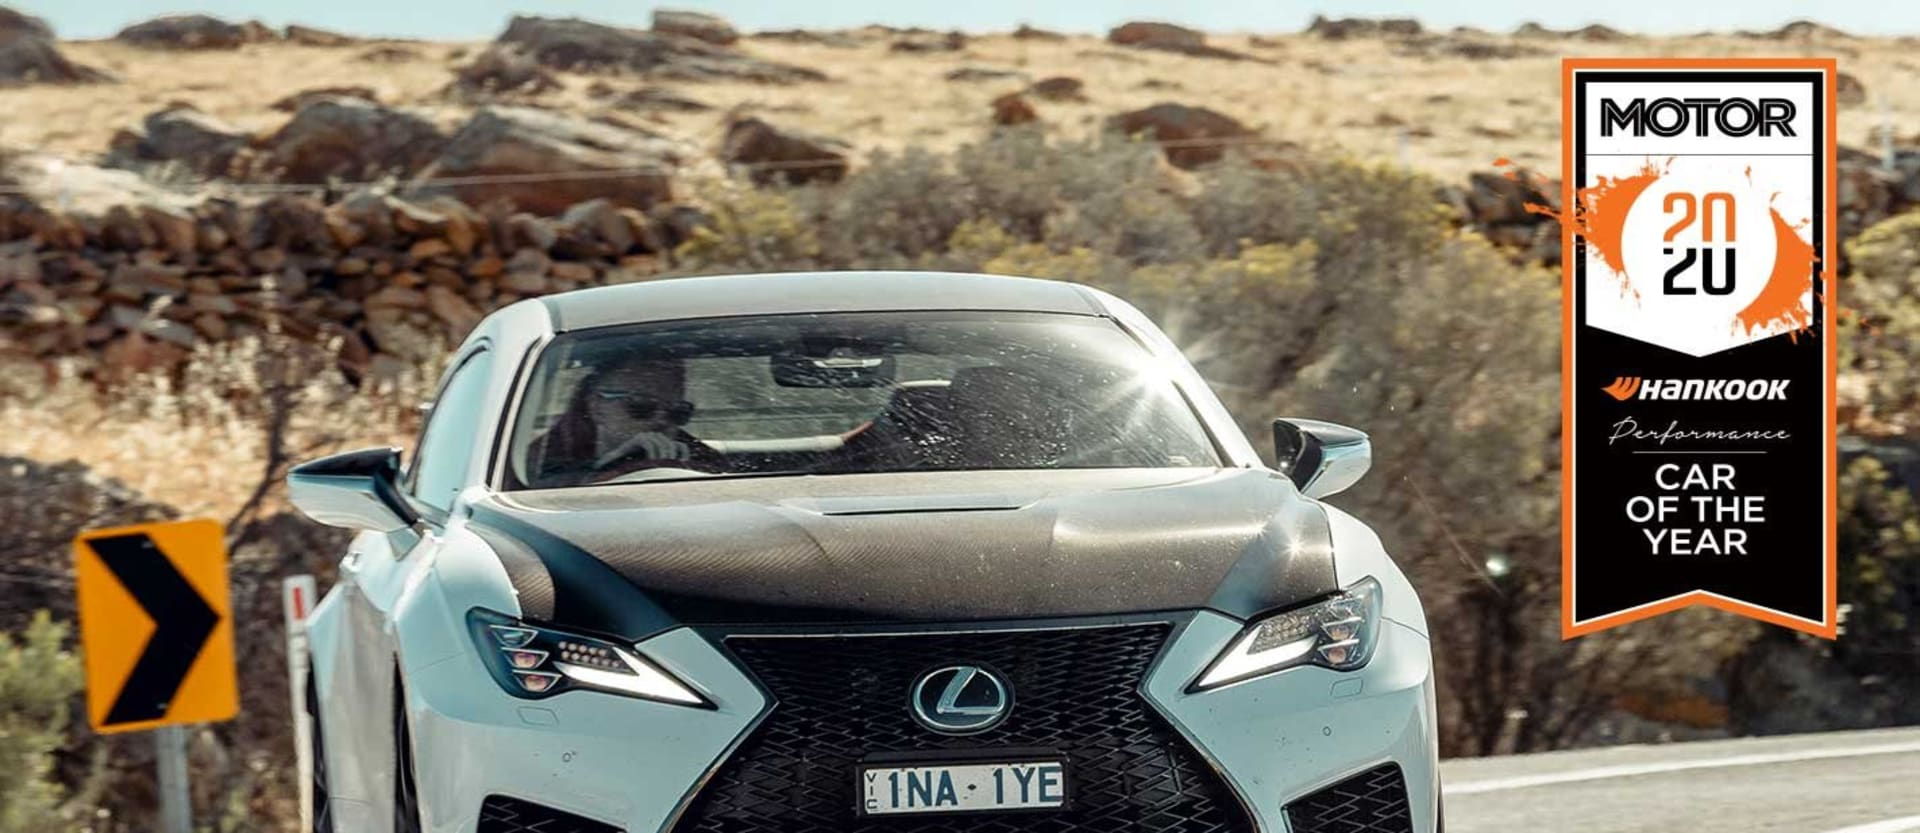 Lexus RC F Track Edition Performance Car of the Year 2020 results